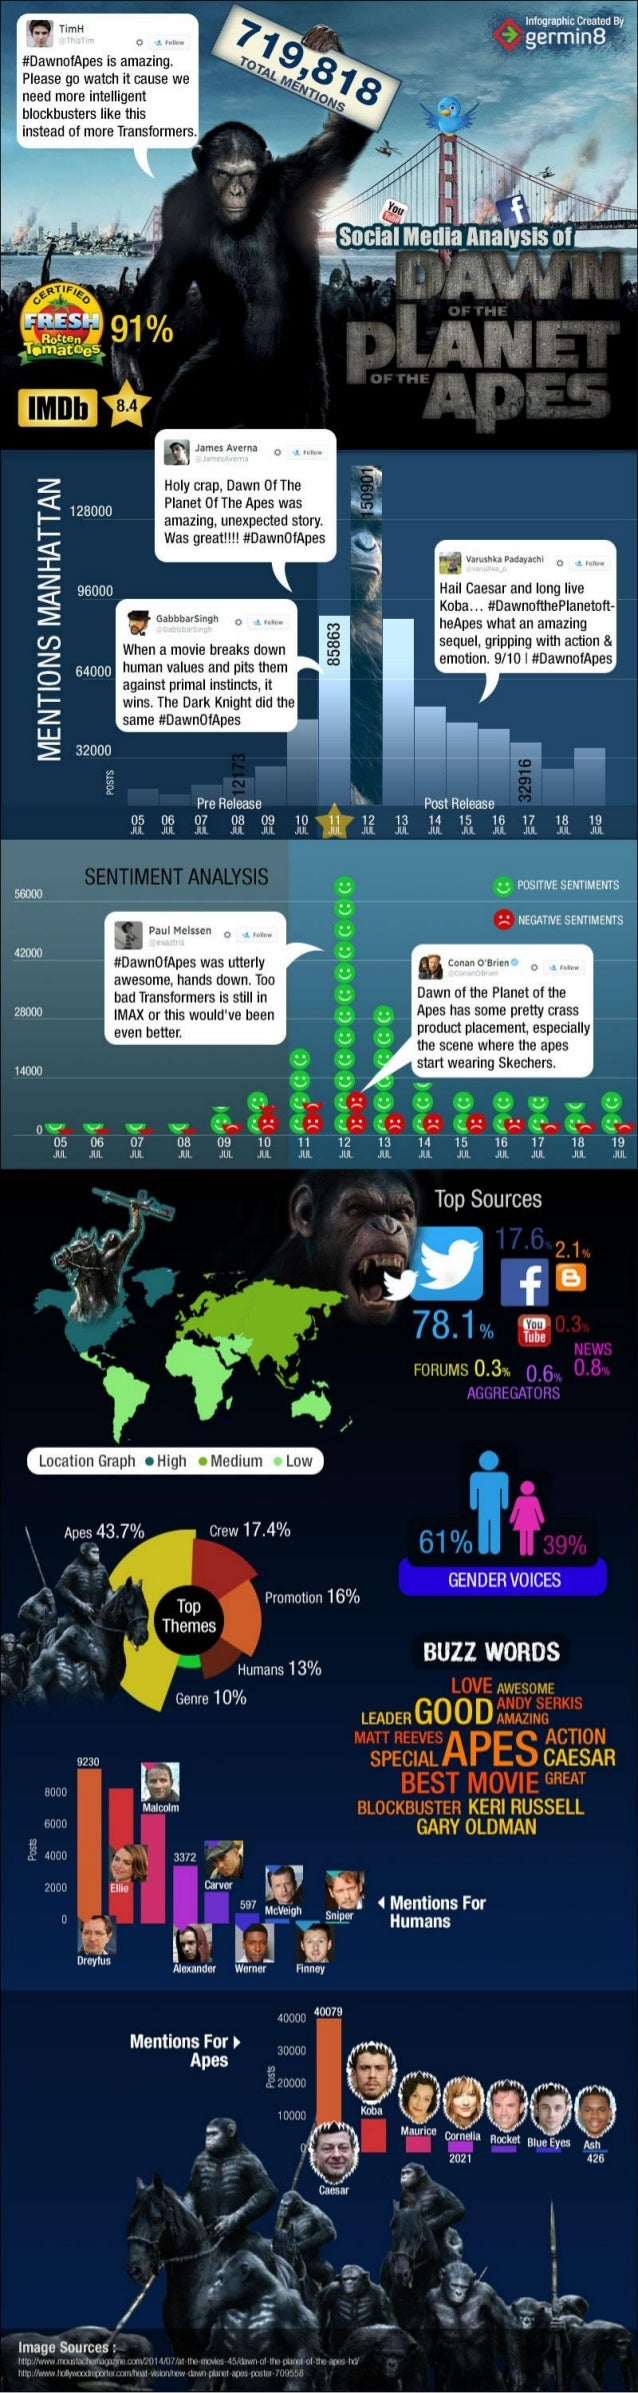 Dawn of the Planet of the Apes: Social Media Analysis